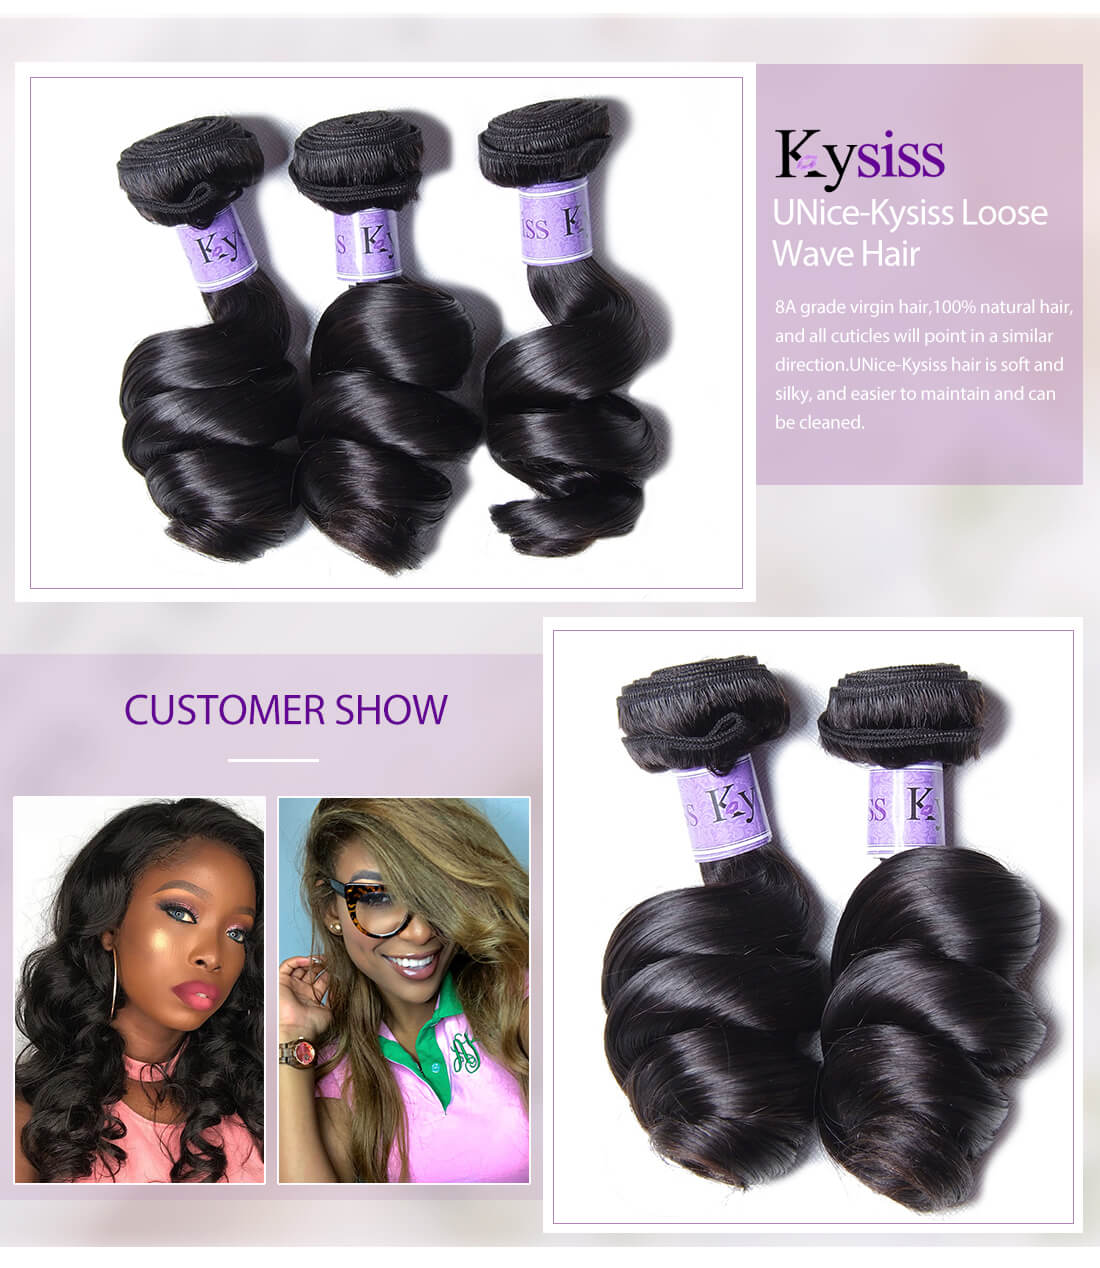 UNice Hair Kysiss Series Loose Wave Hair